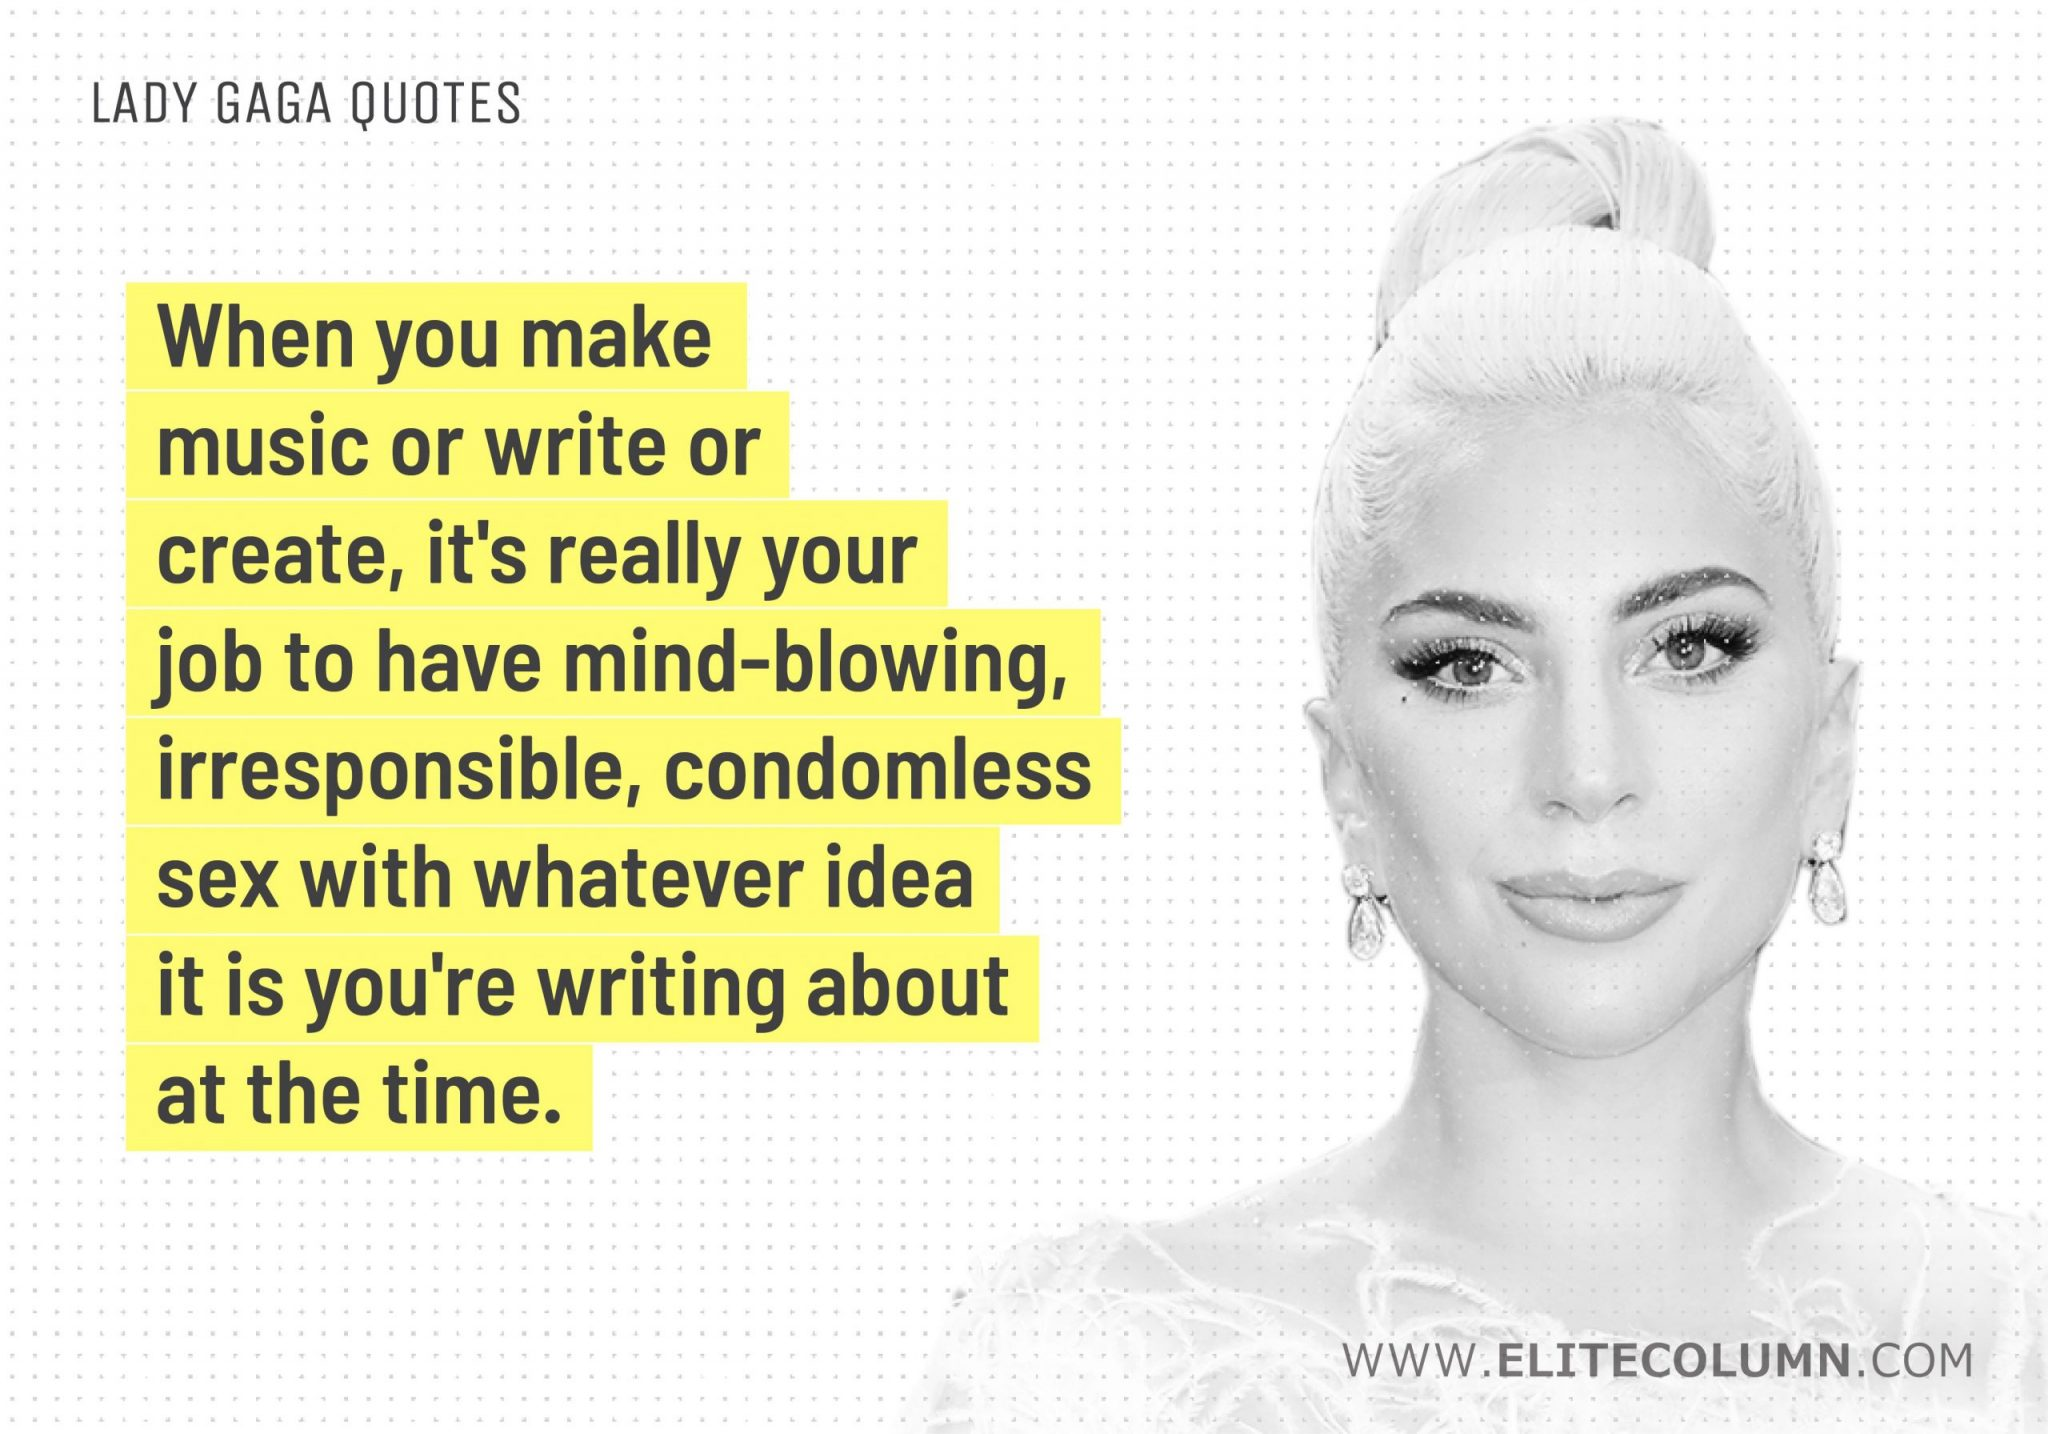 Lady Gaga Quotes (8)